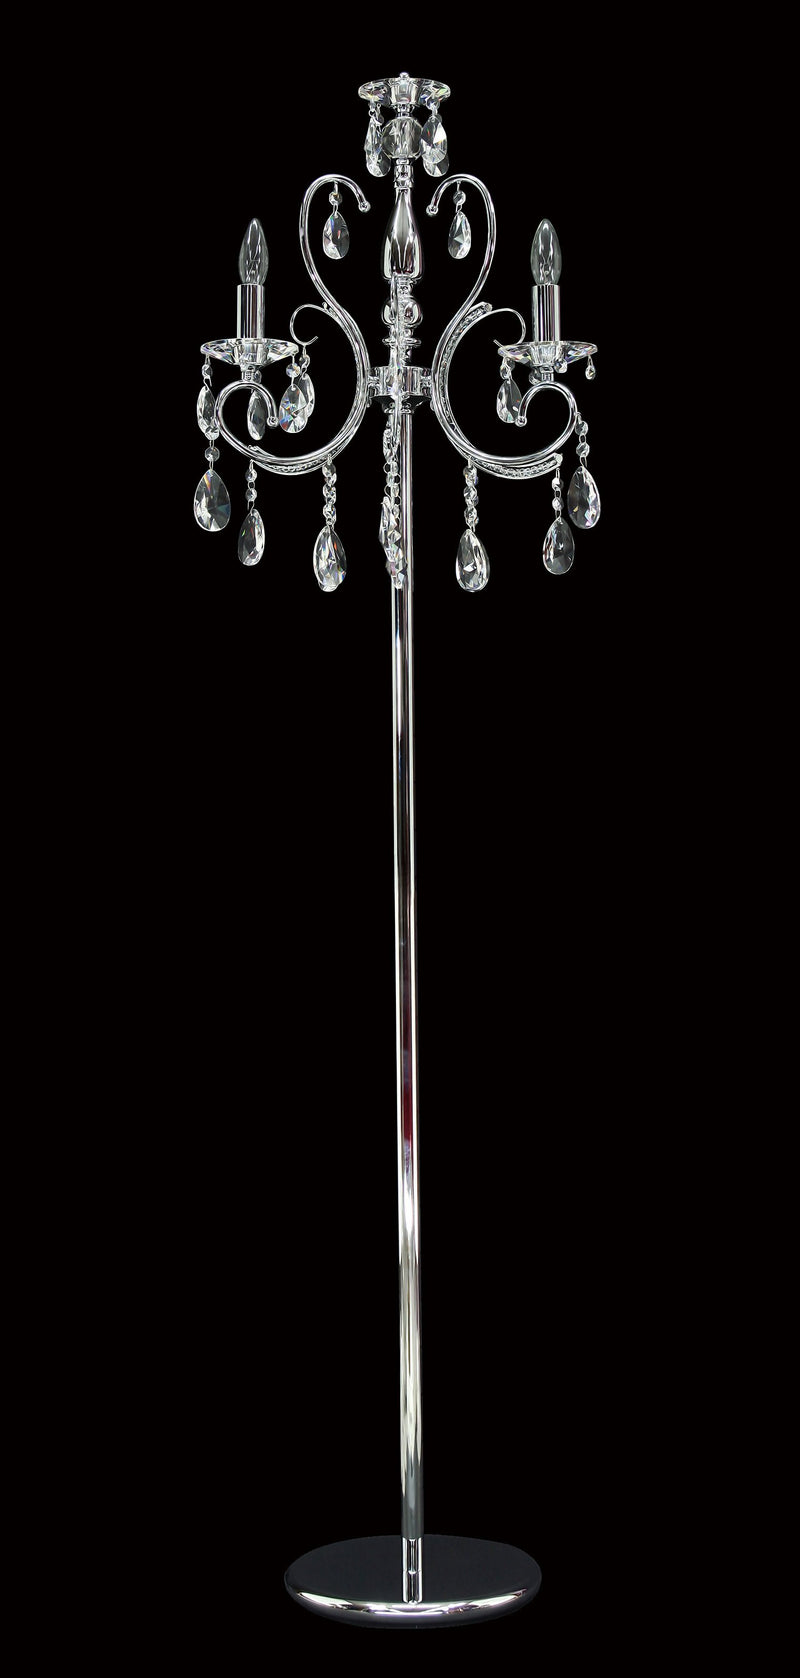 "2013 Crystal Floor Lamp 18"" 3 Light - Asfour Crystal [ST-2013-18""-3L-1038-873]"